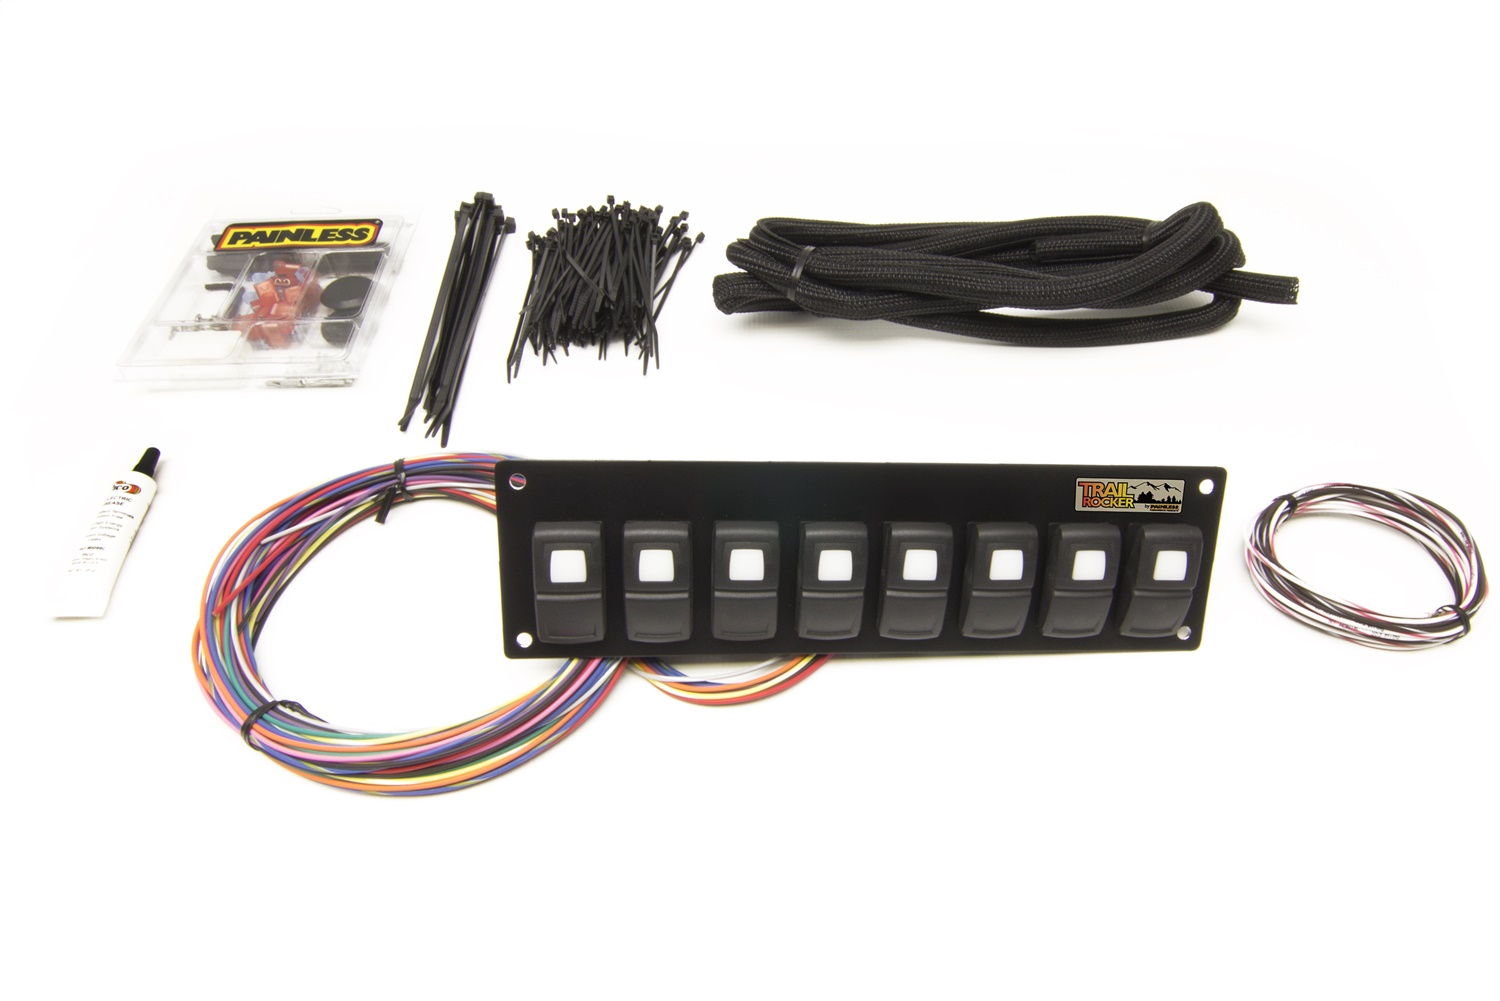 Painless Wiring 57101 Trail Rocker 8-Switch Panel